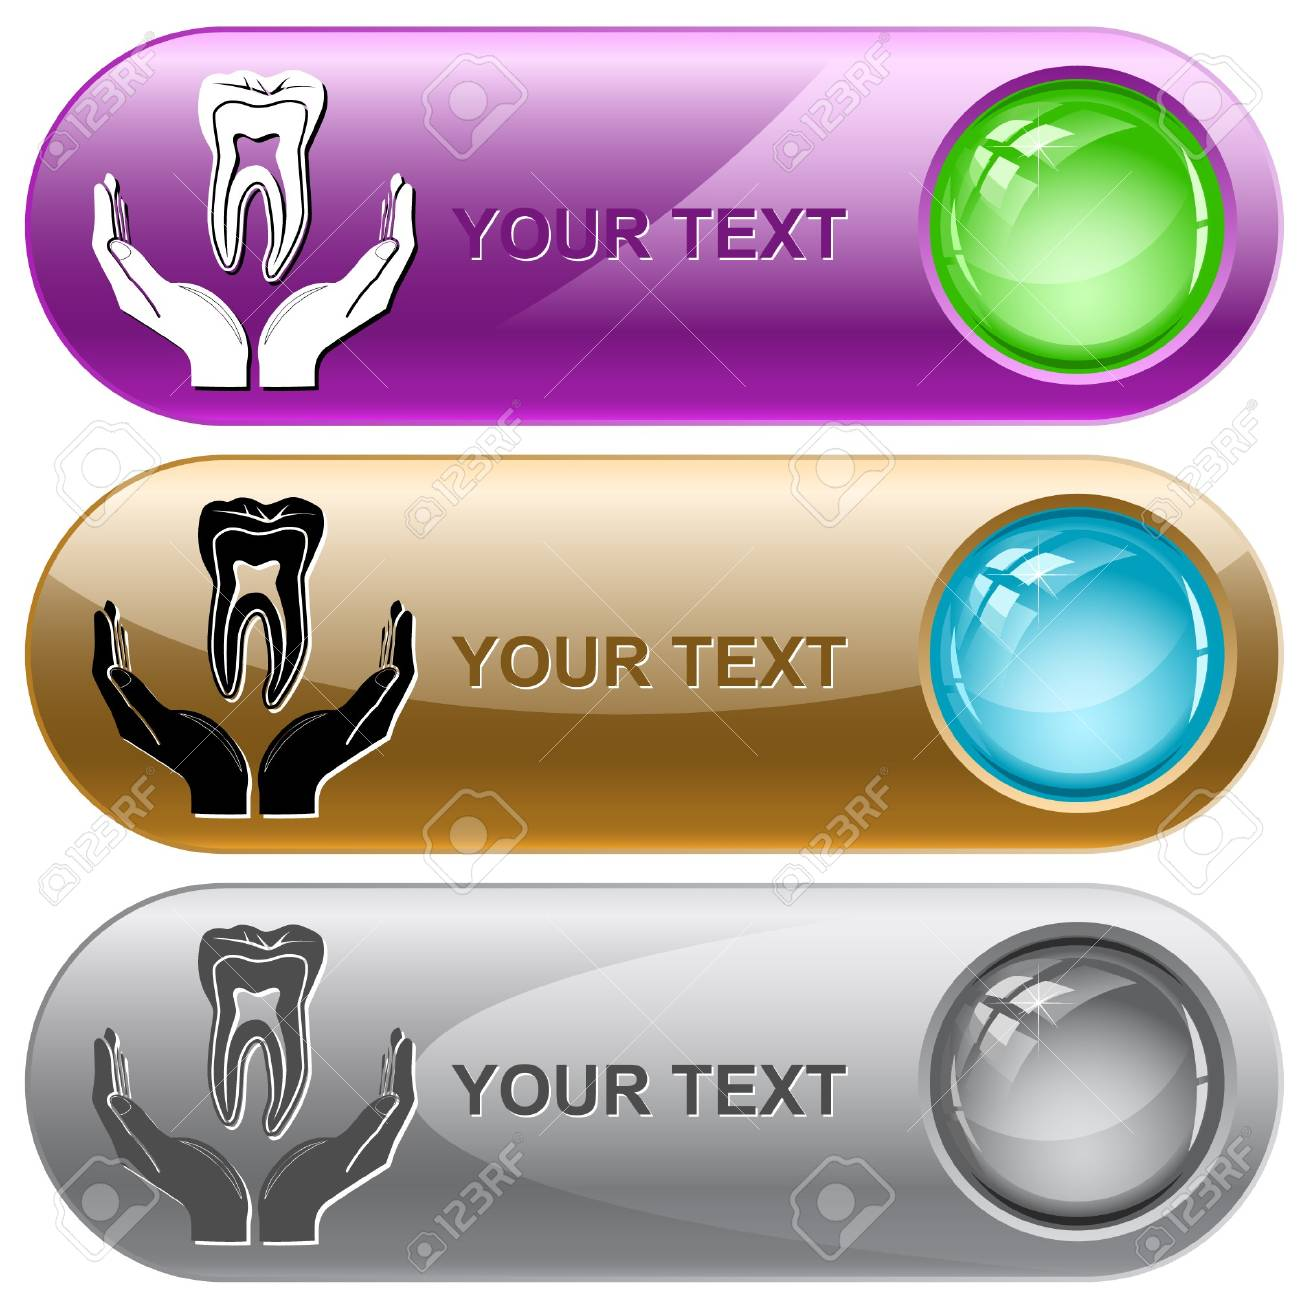 health in hands.  internet buttons. Stock Photo - 8220509